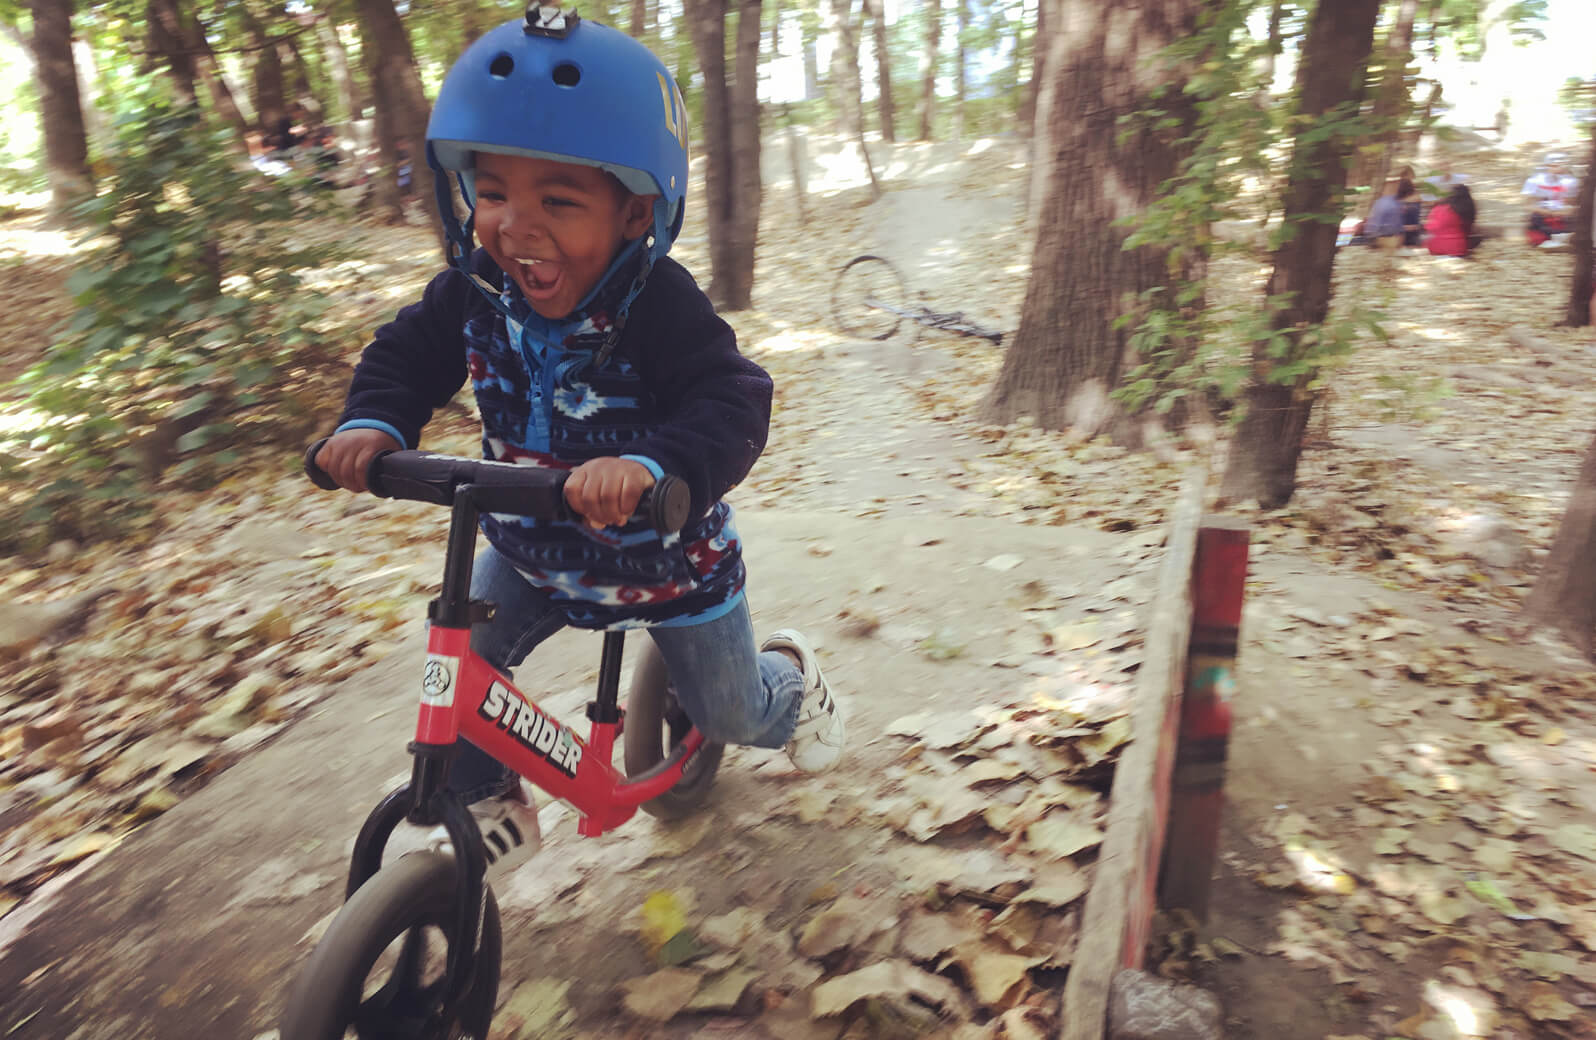 strider balance bikes be adventurous